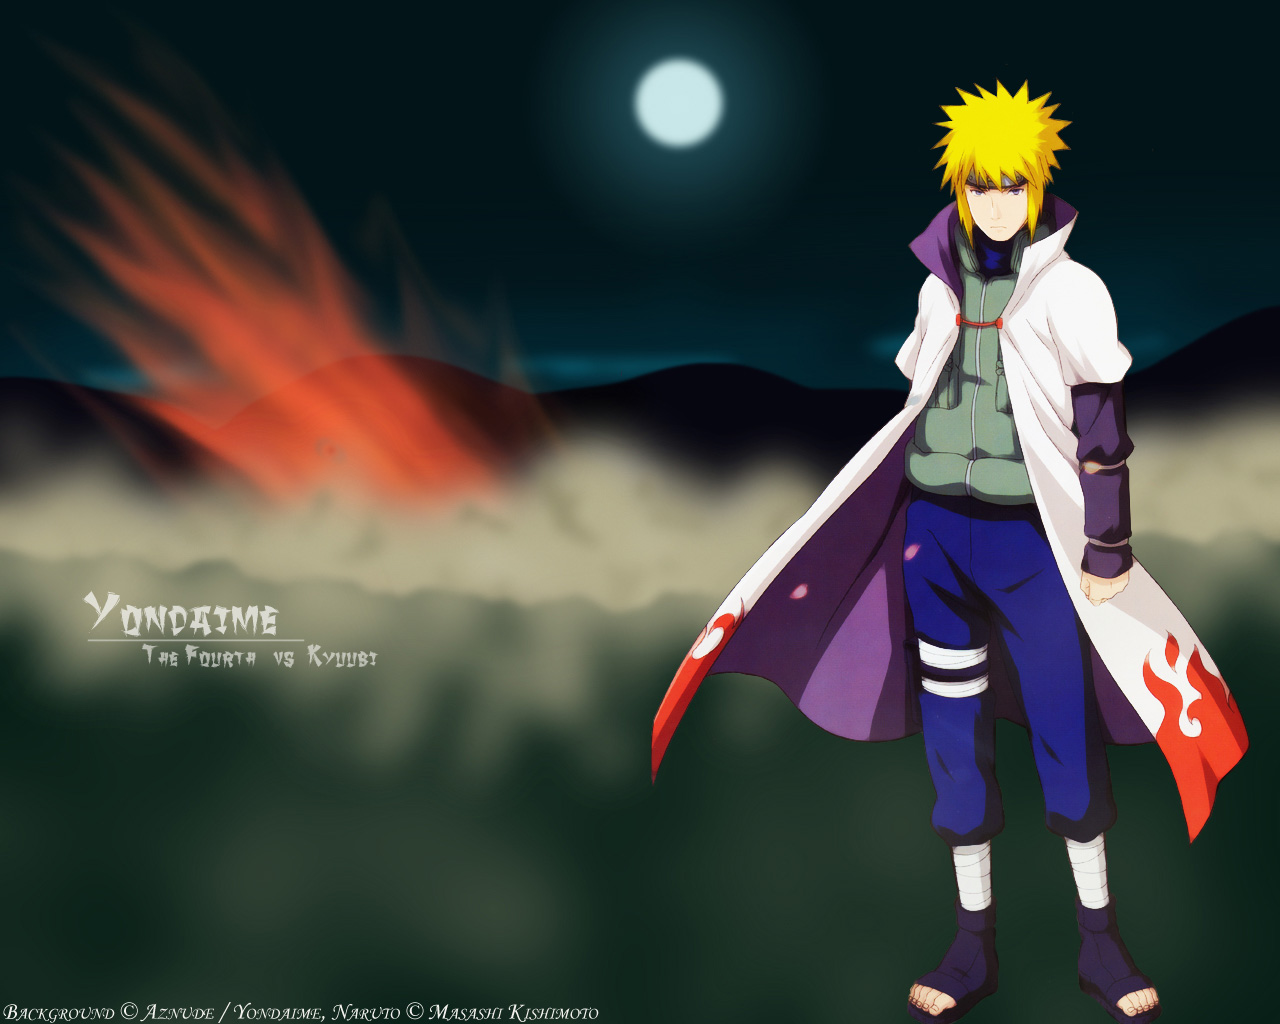 Naruto Characters In Real World Background Wallpaper: 3d Wallpapers: Naruto Wallpaper